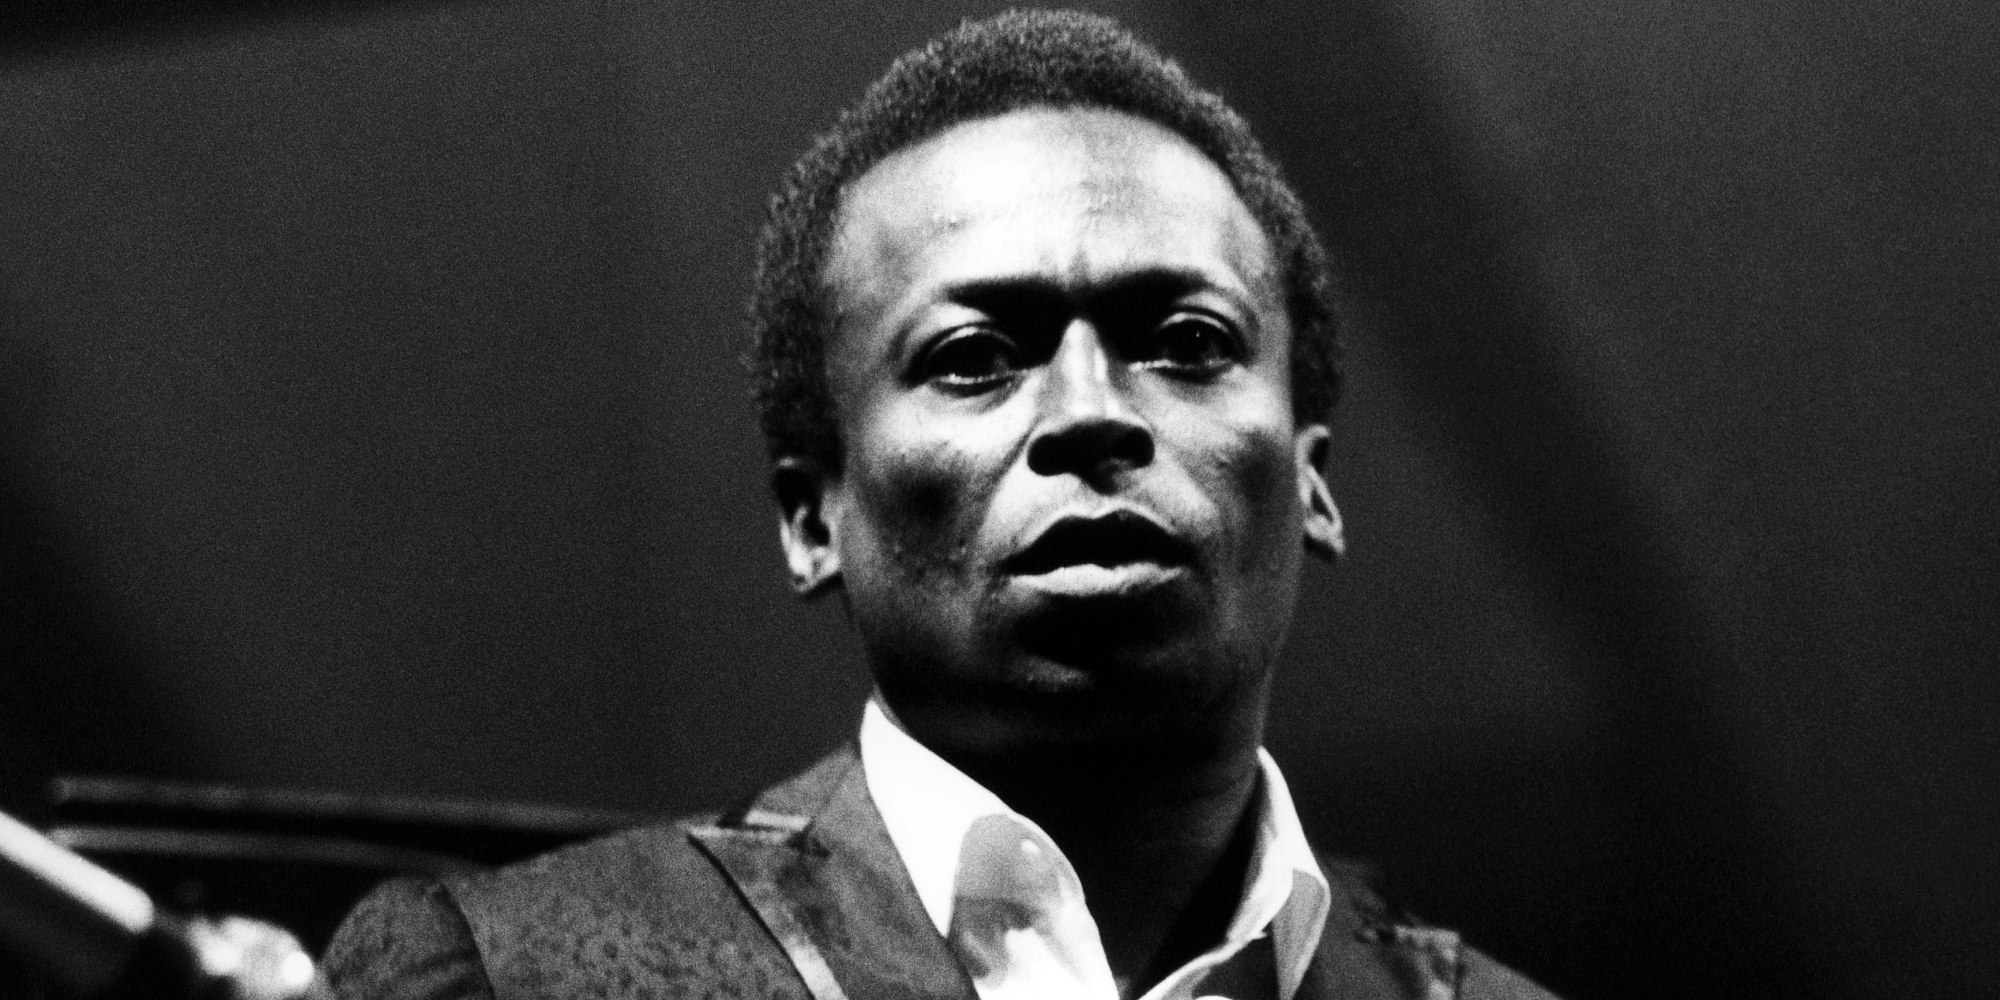 Rendir n un homenaje a un grande del jazz miles davis for Noticias de ultima hora espectaculos mexico